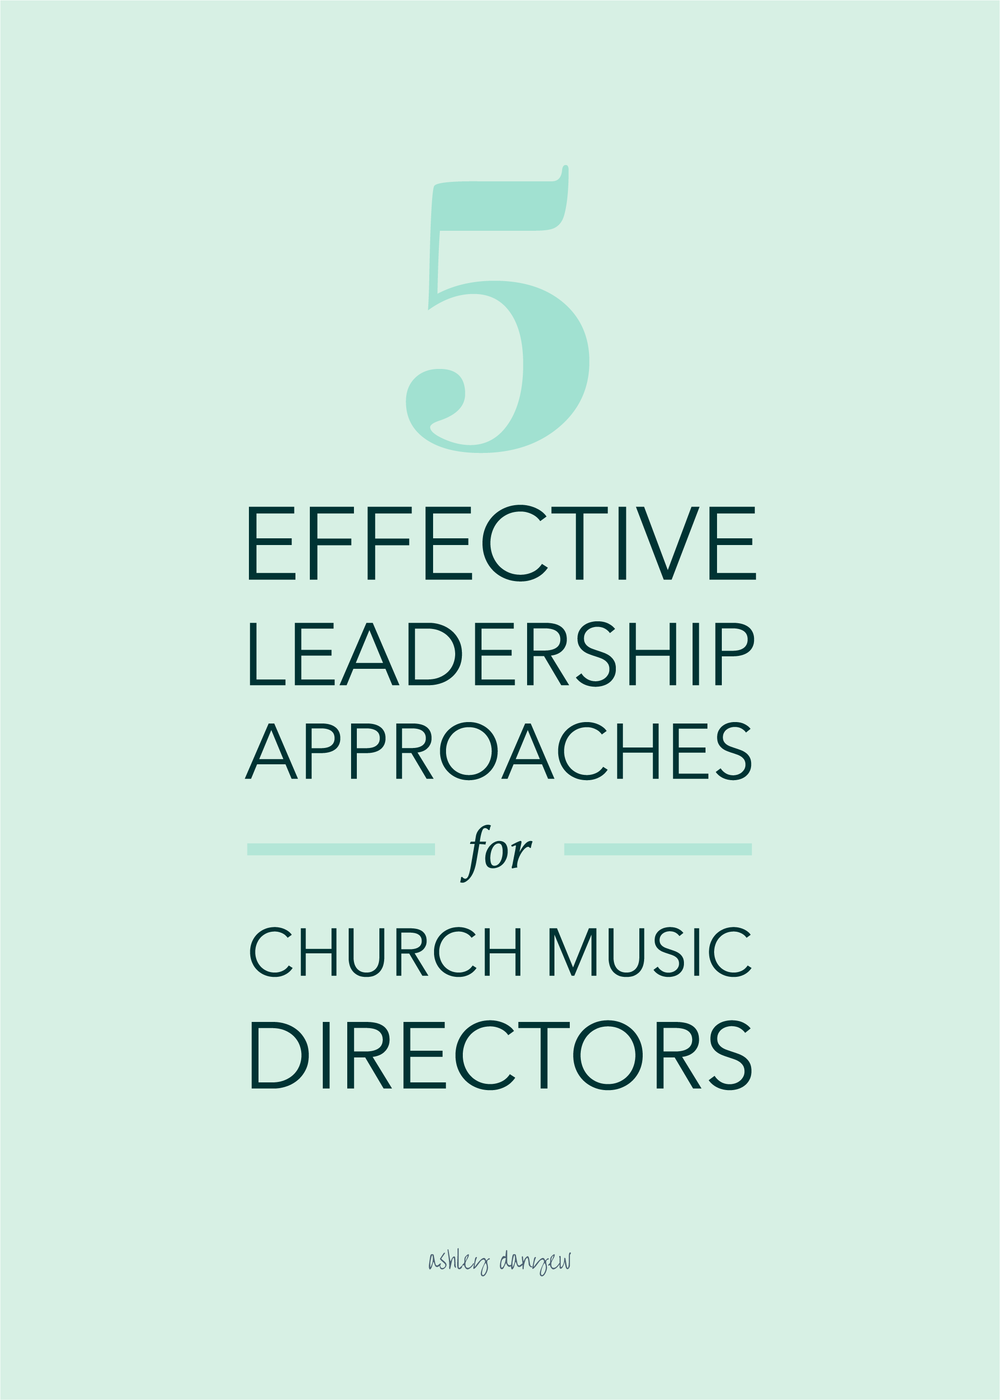 5 Effective Leadership Approaches for Church Music Directors-33.png